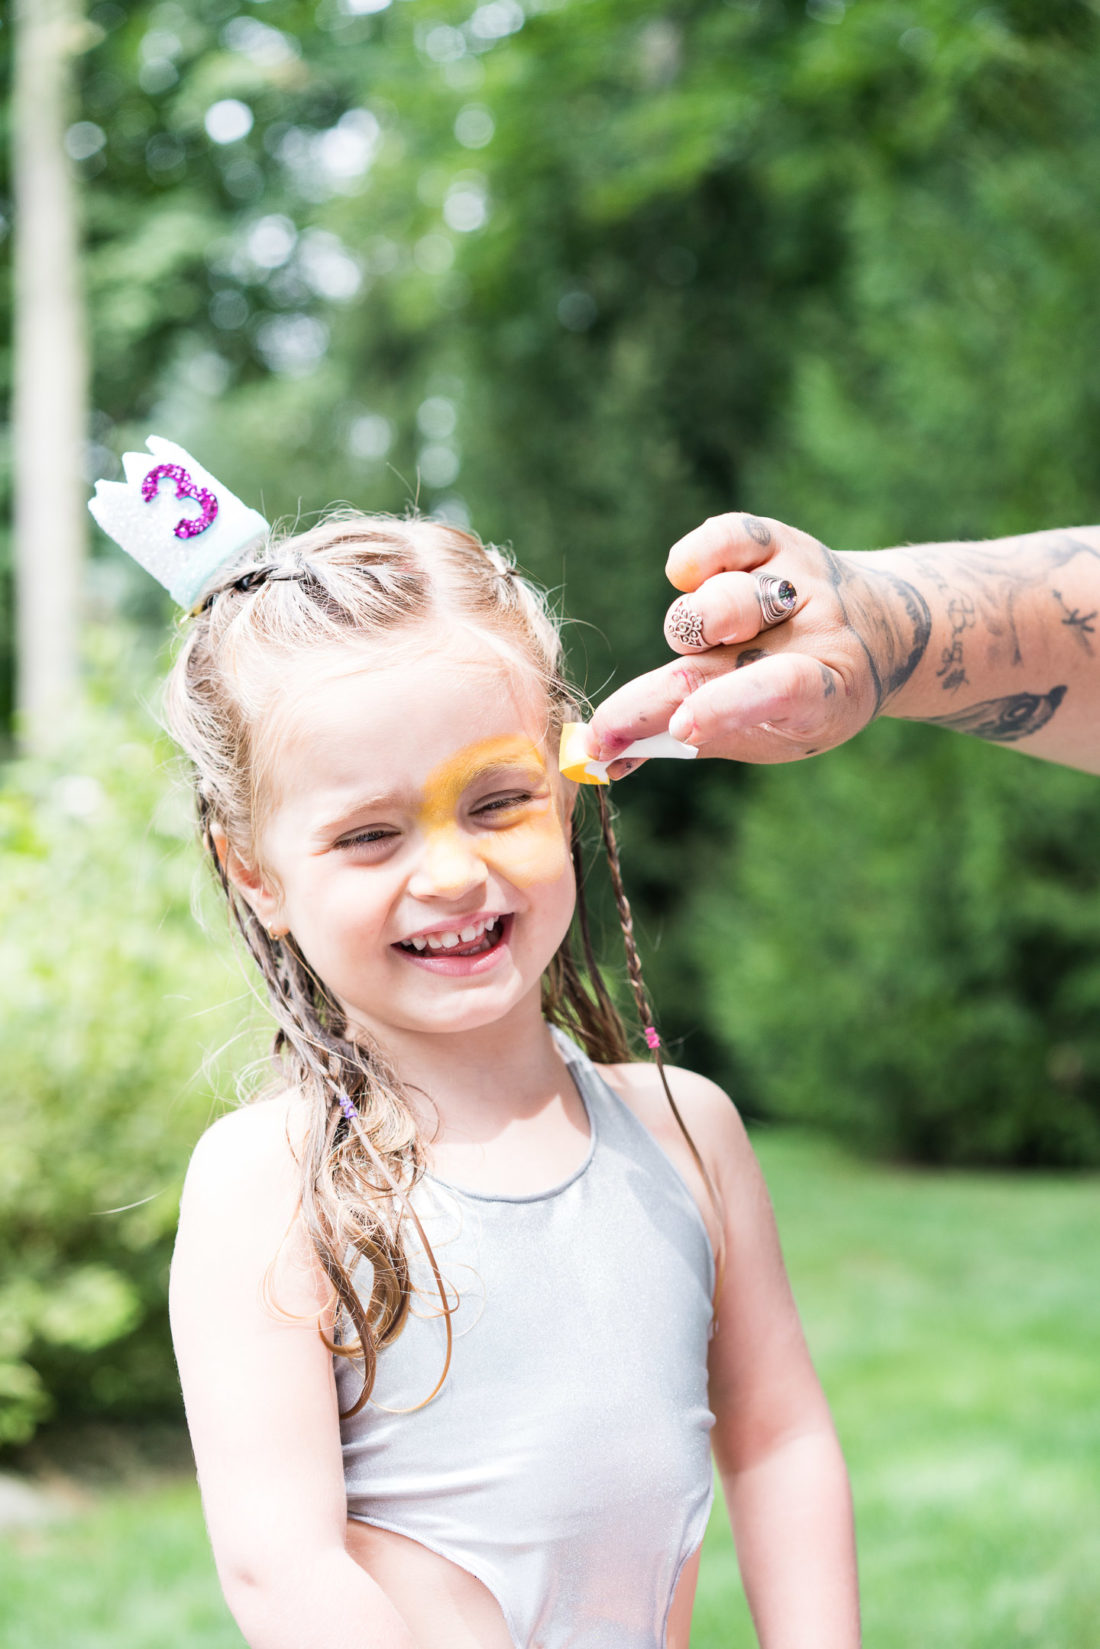 Marlowe Martino gets her face painted for a second time at her third birthday party